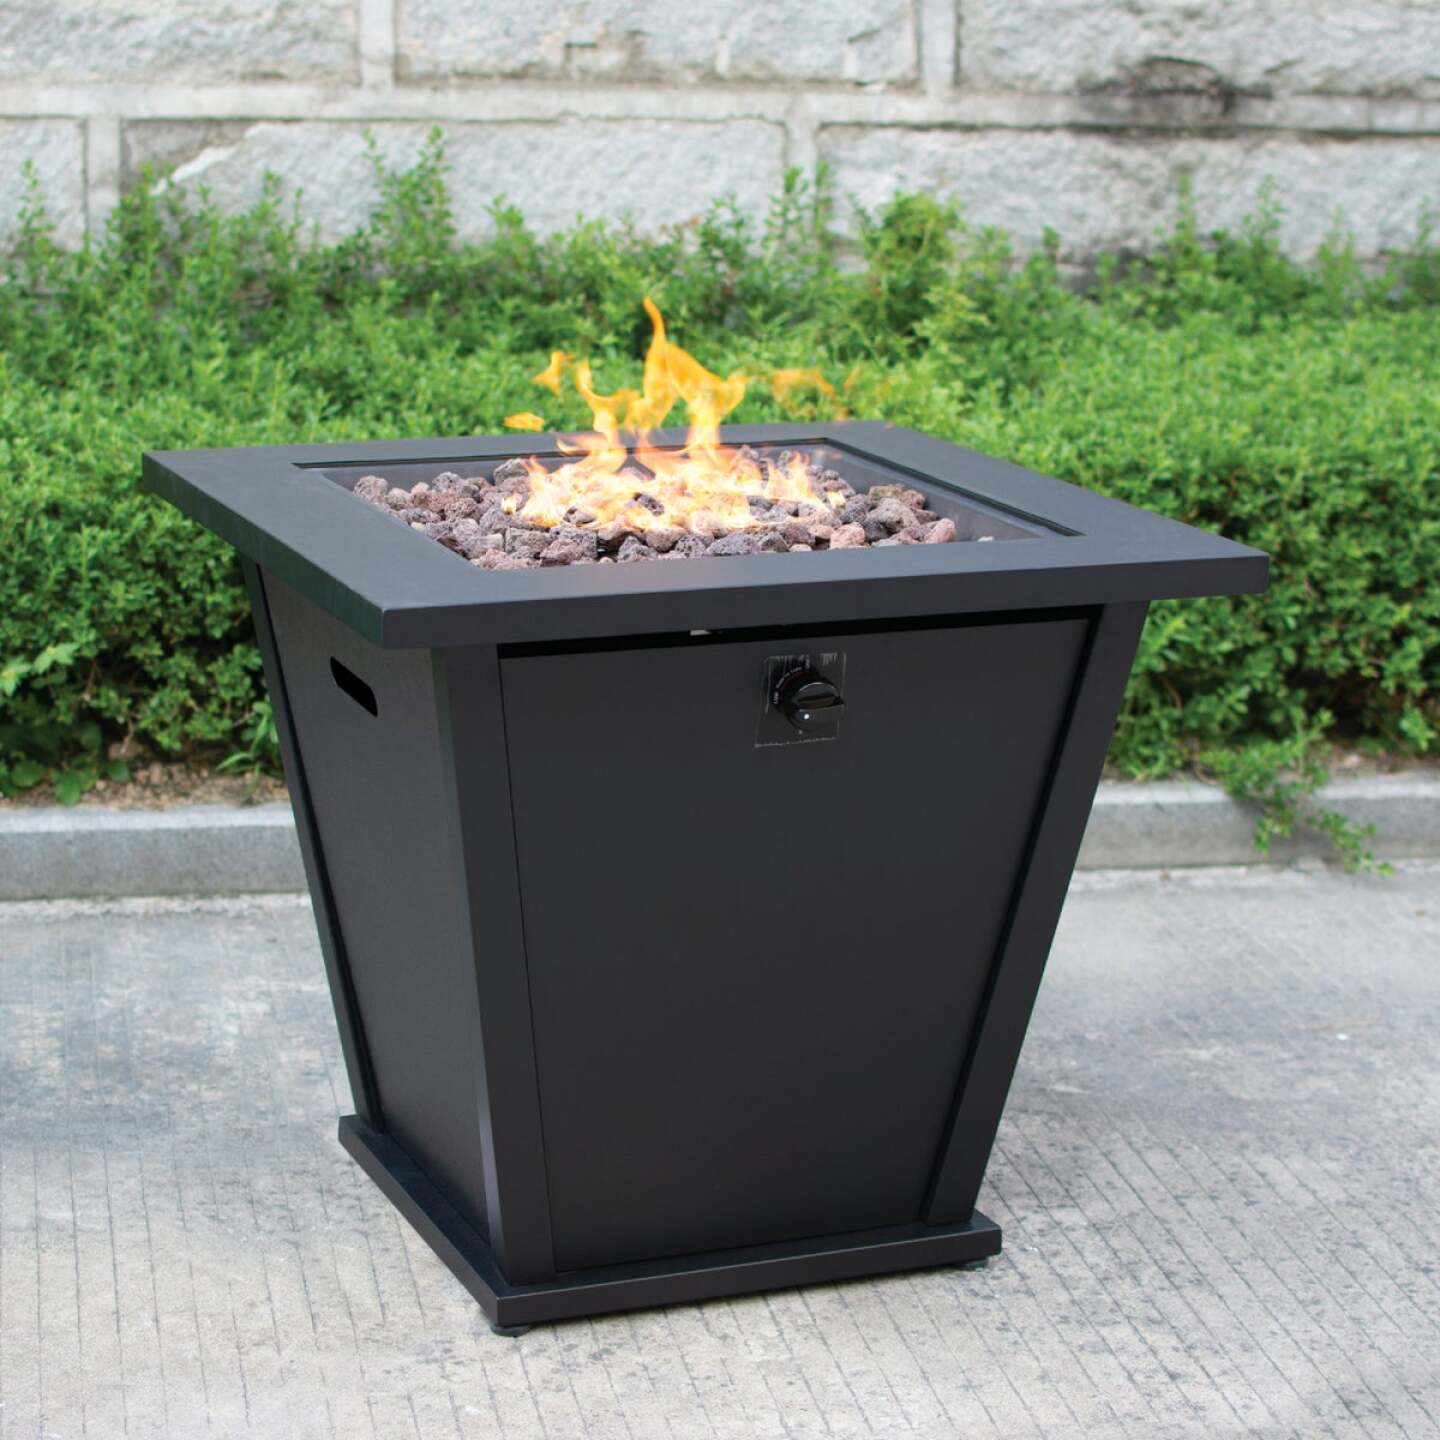 Bond Olivera 28 In. Square Steel Gas Fire Pit Image 1